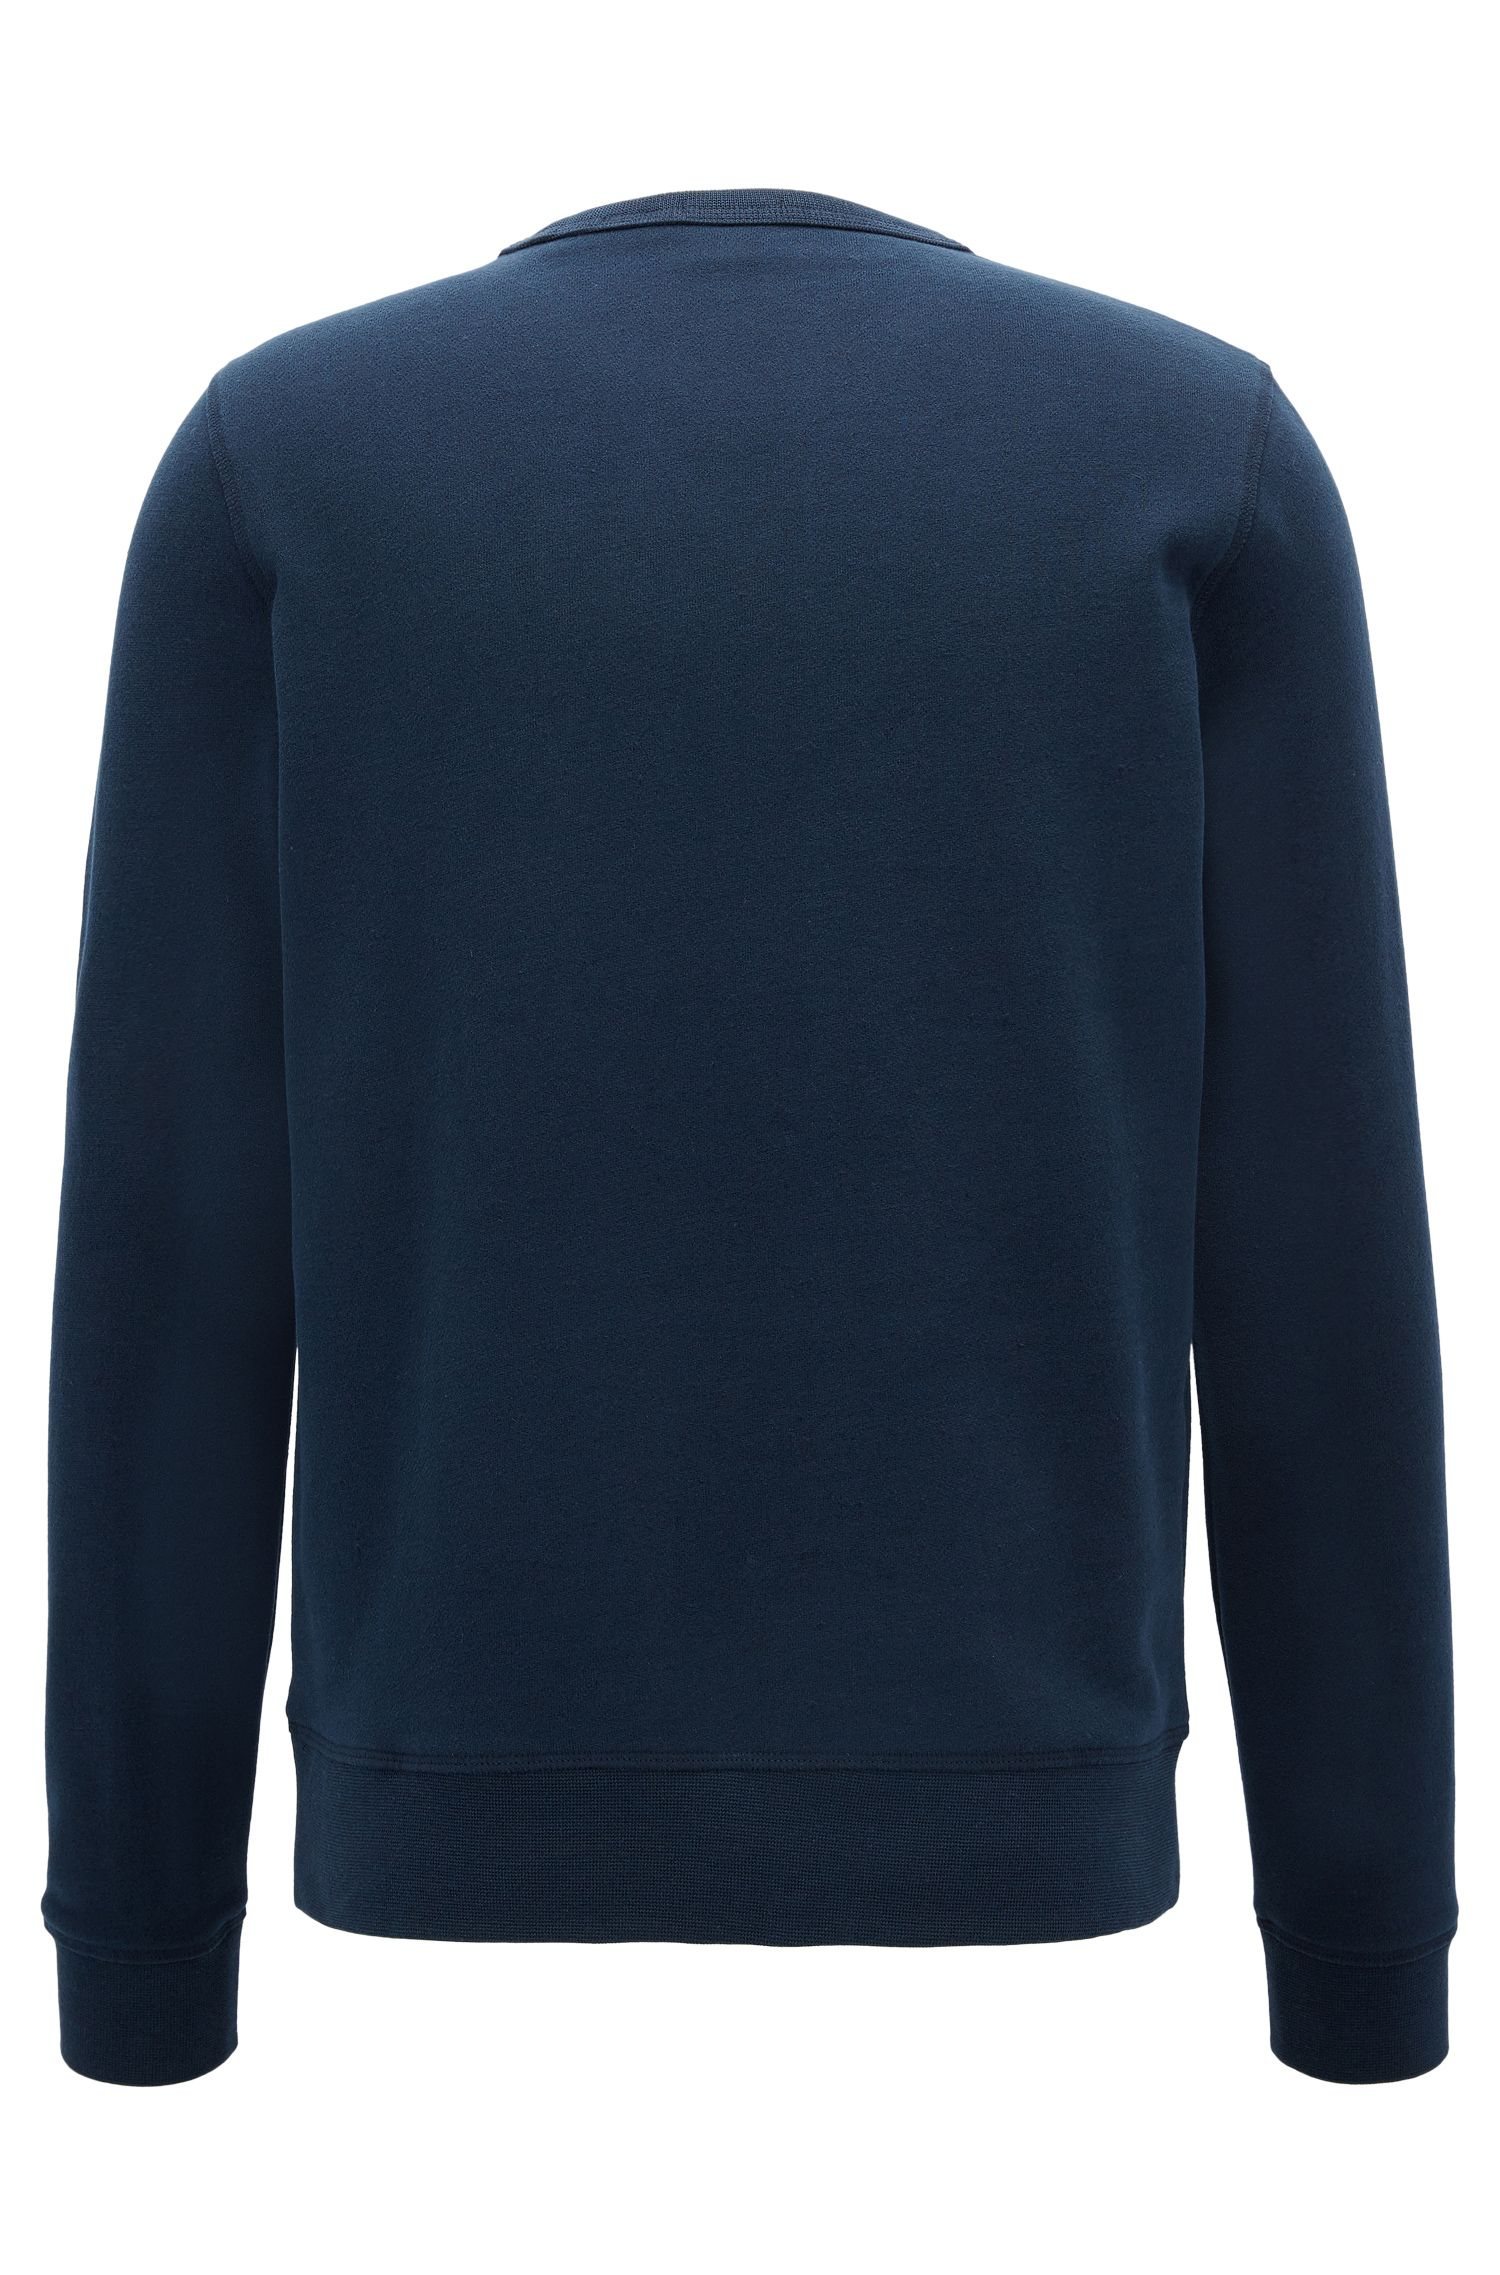 Cotton-blend sweatshirt with contrast stitched logo